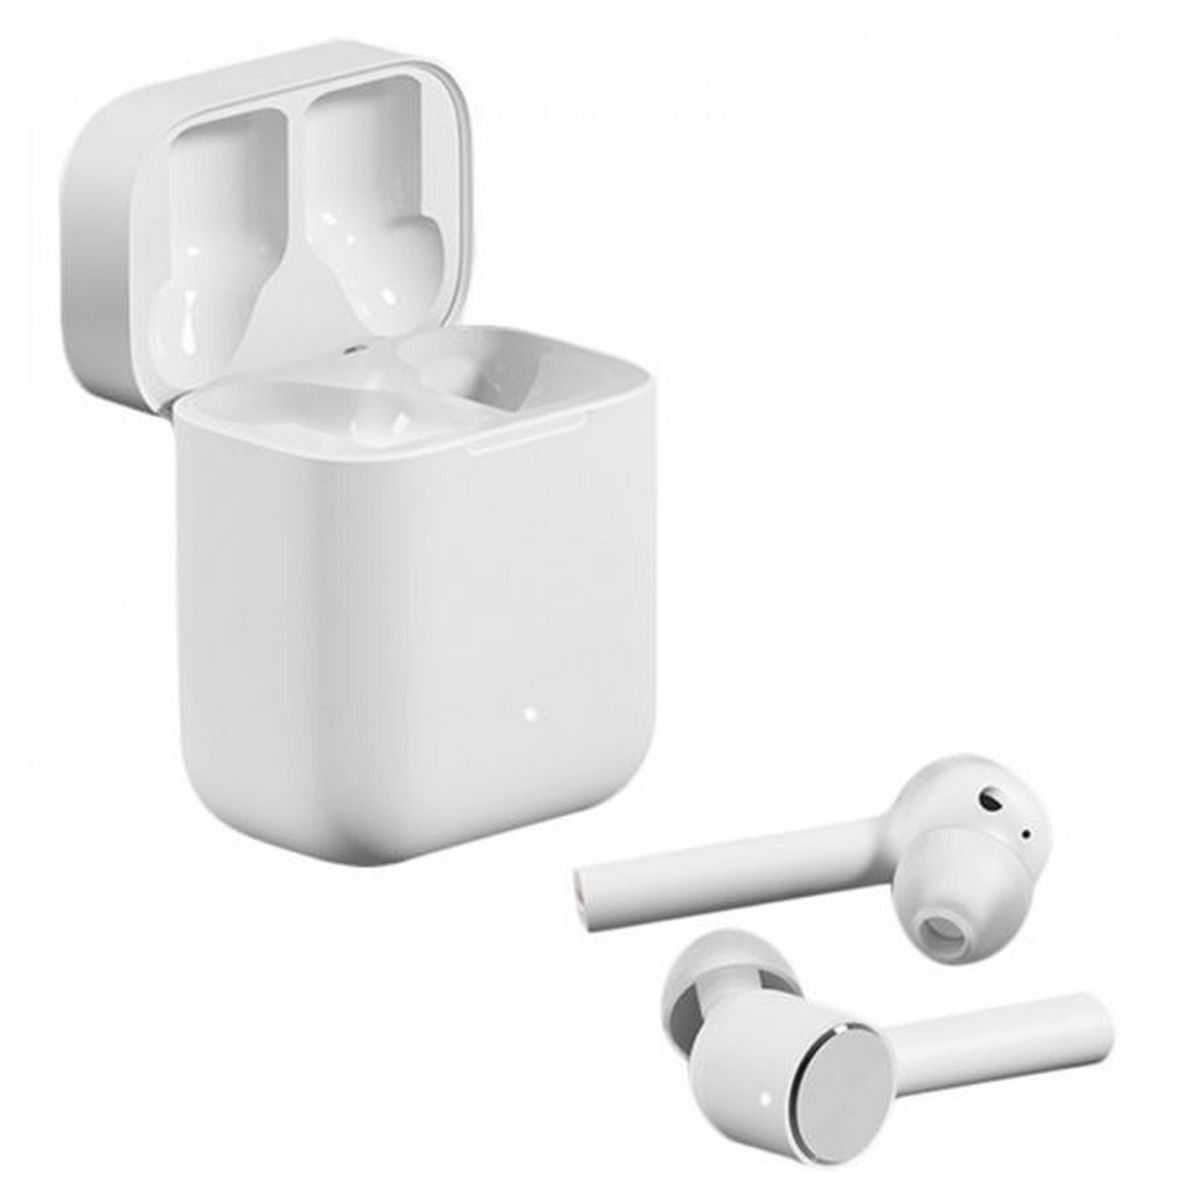 Ecouteurs Intra-auriculaire Sans Fil Buds True Wireless Blanc